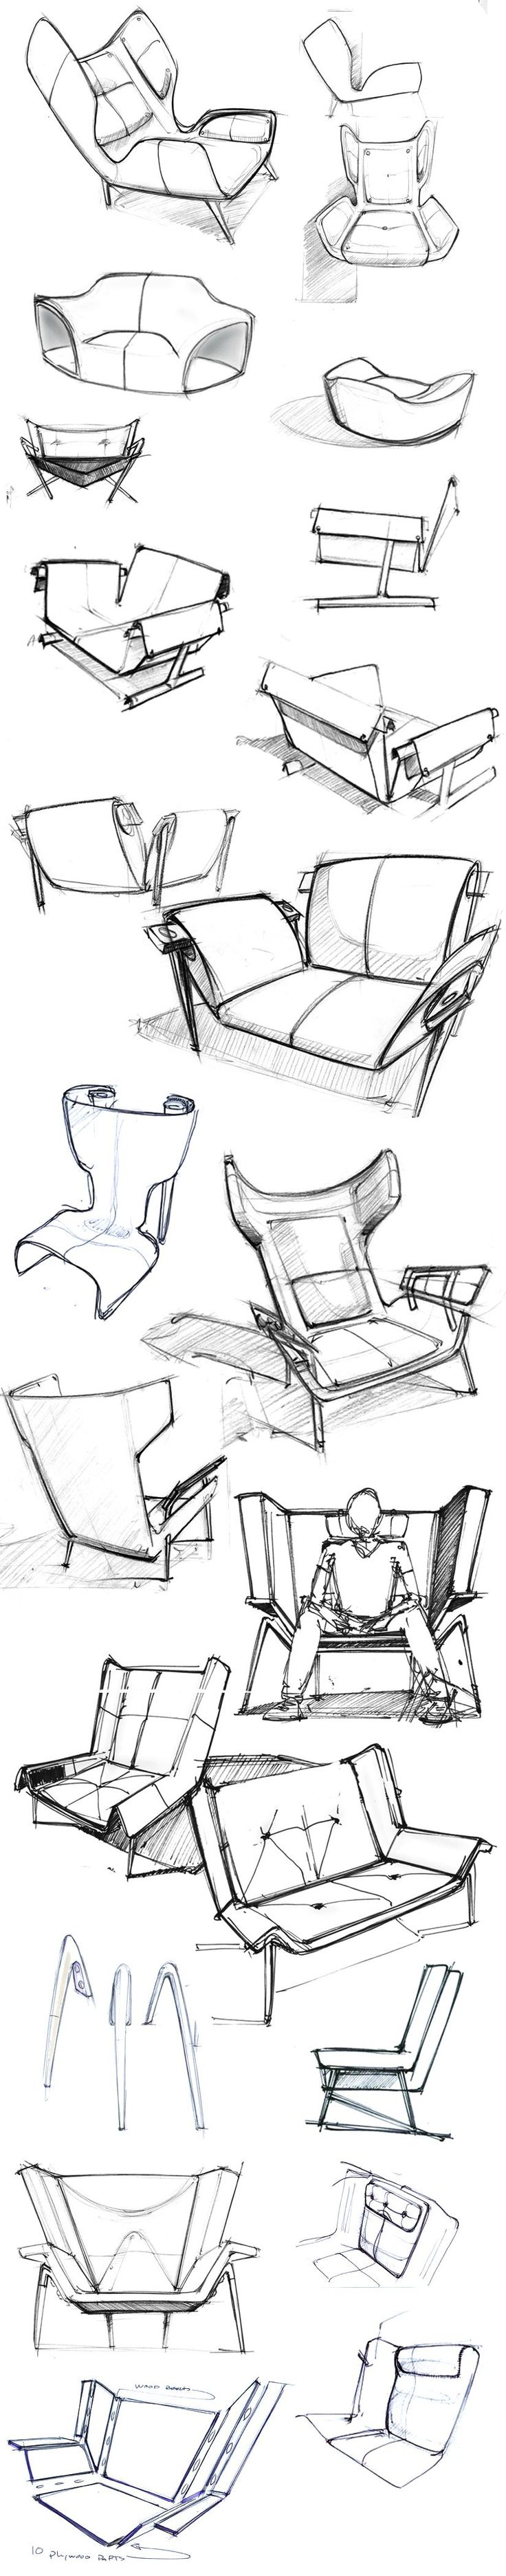 sketches of the Deca Lounge Chair by Larry Parker